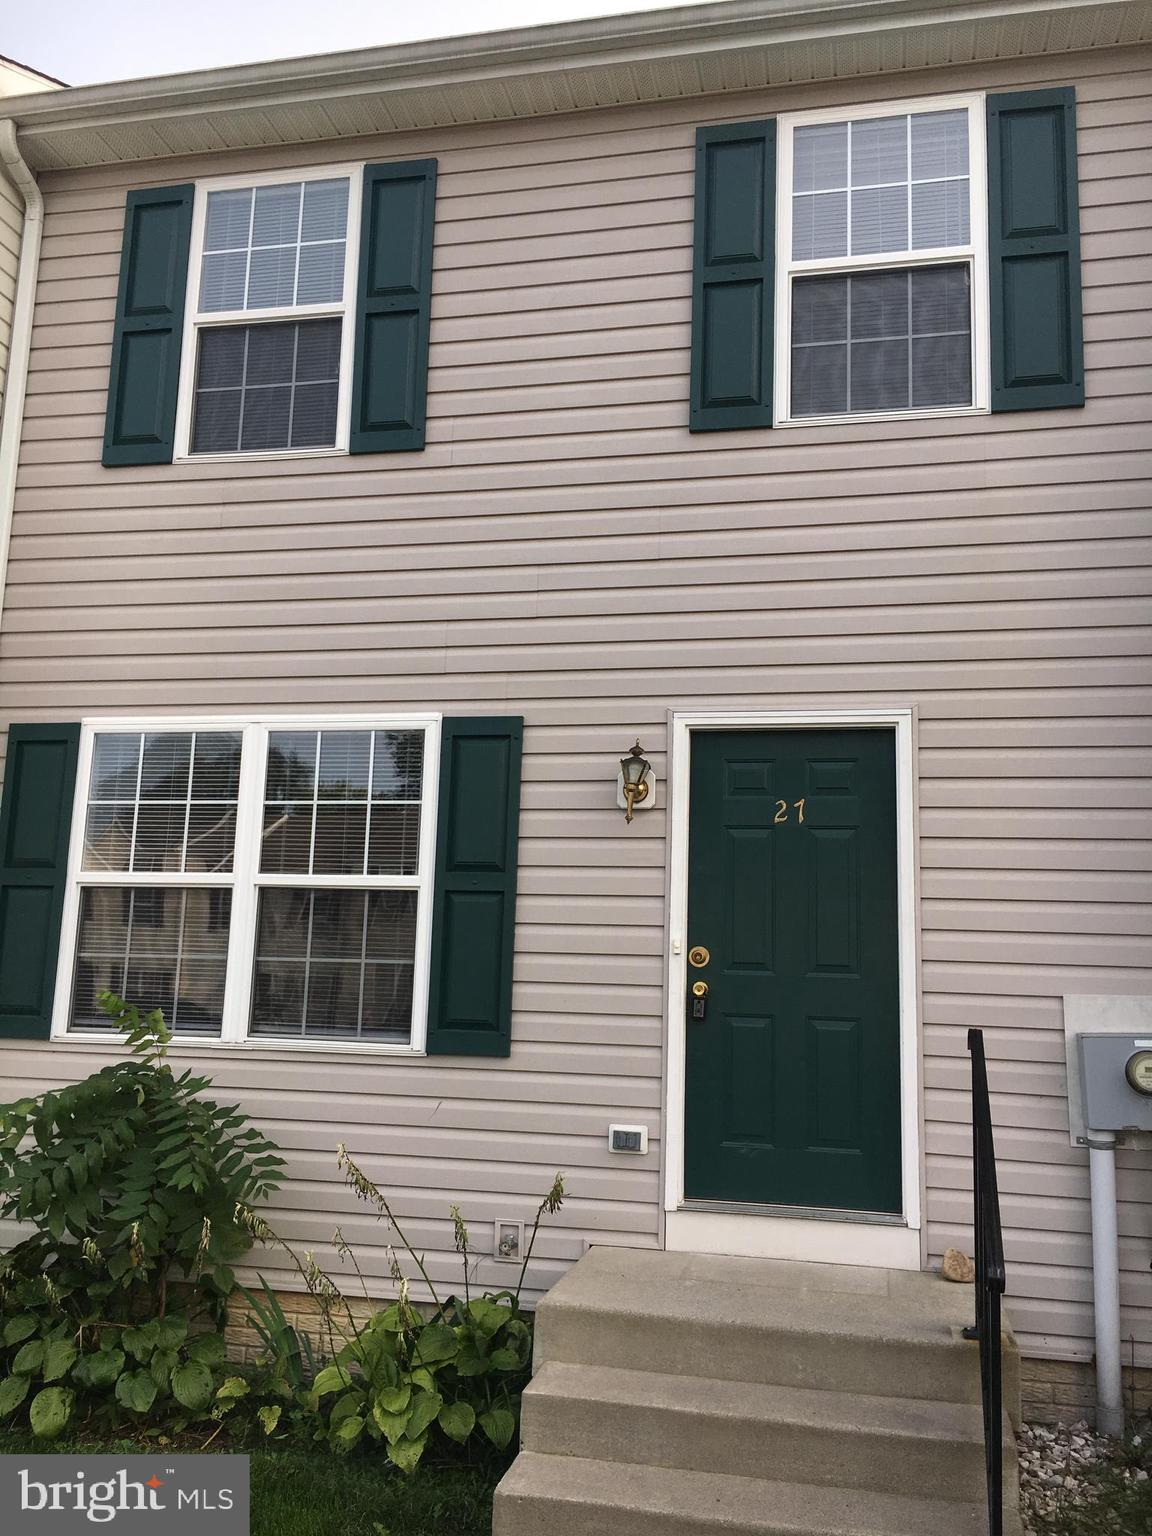 Townhome located in Bunker Hill . Convenient to interstate. Townhome features, open floor plan on ma